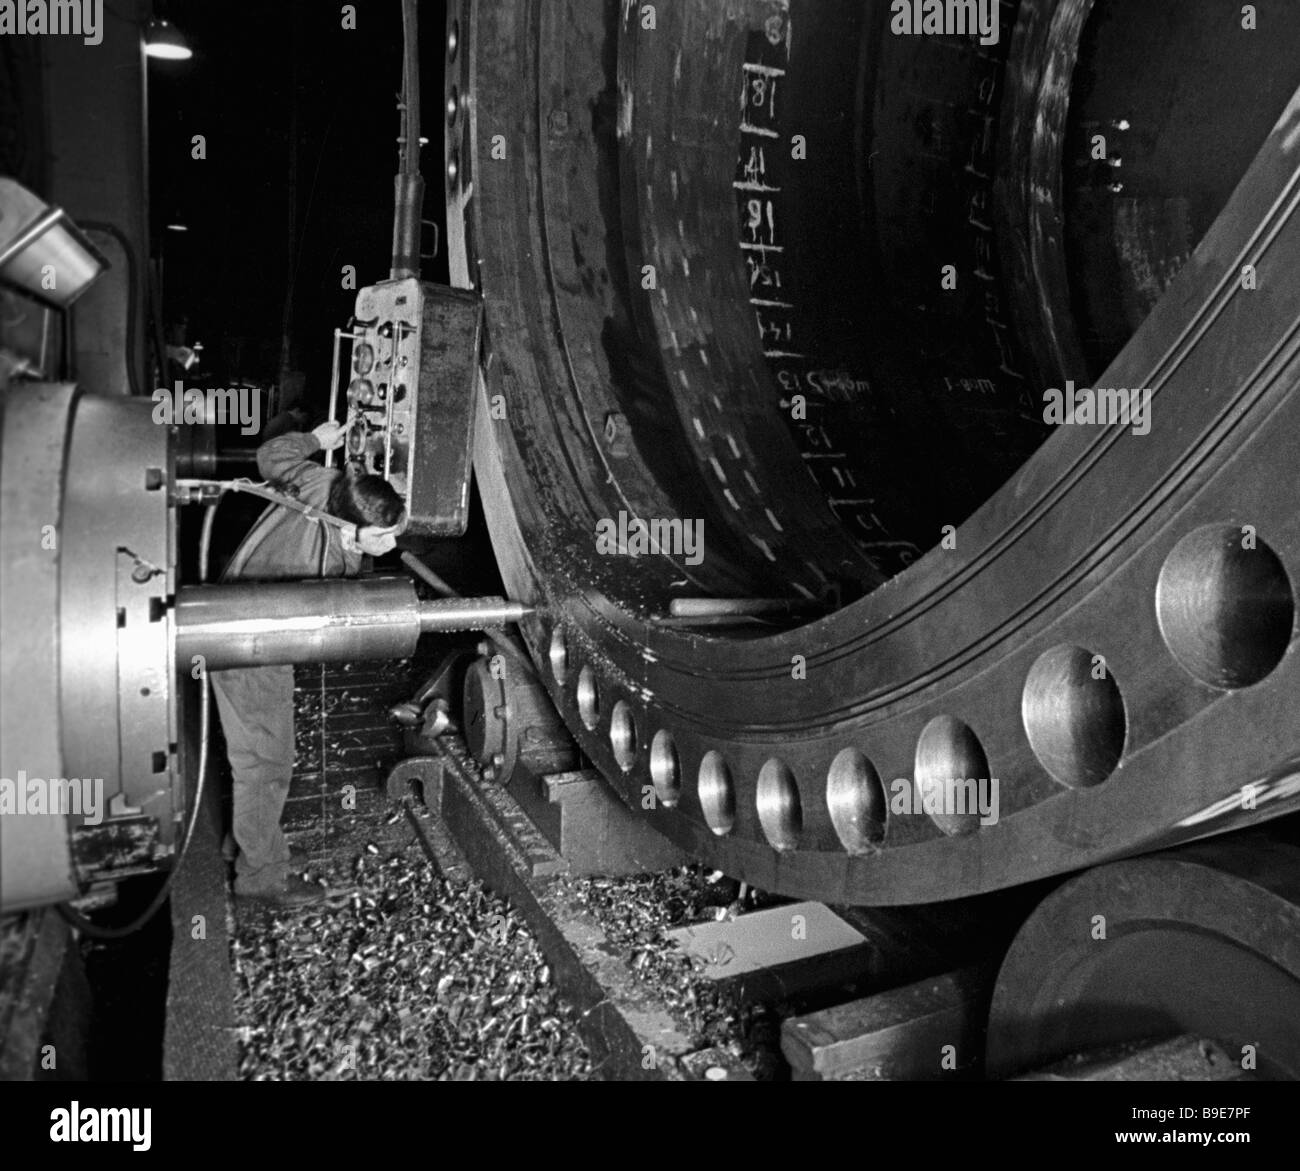 Nuclear reactor core manufacture at the Zhdanov Engineering Works or Izhorsky Zavod - Stock Image